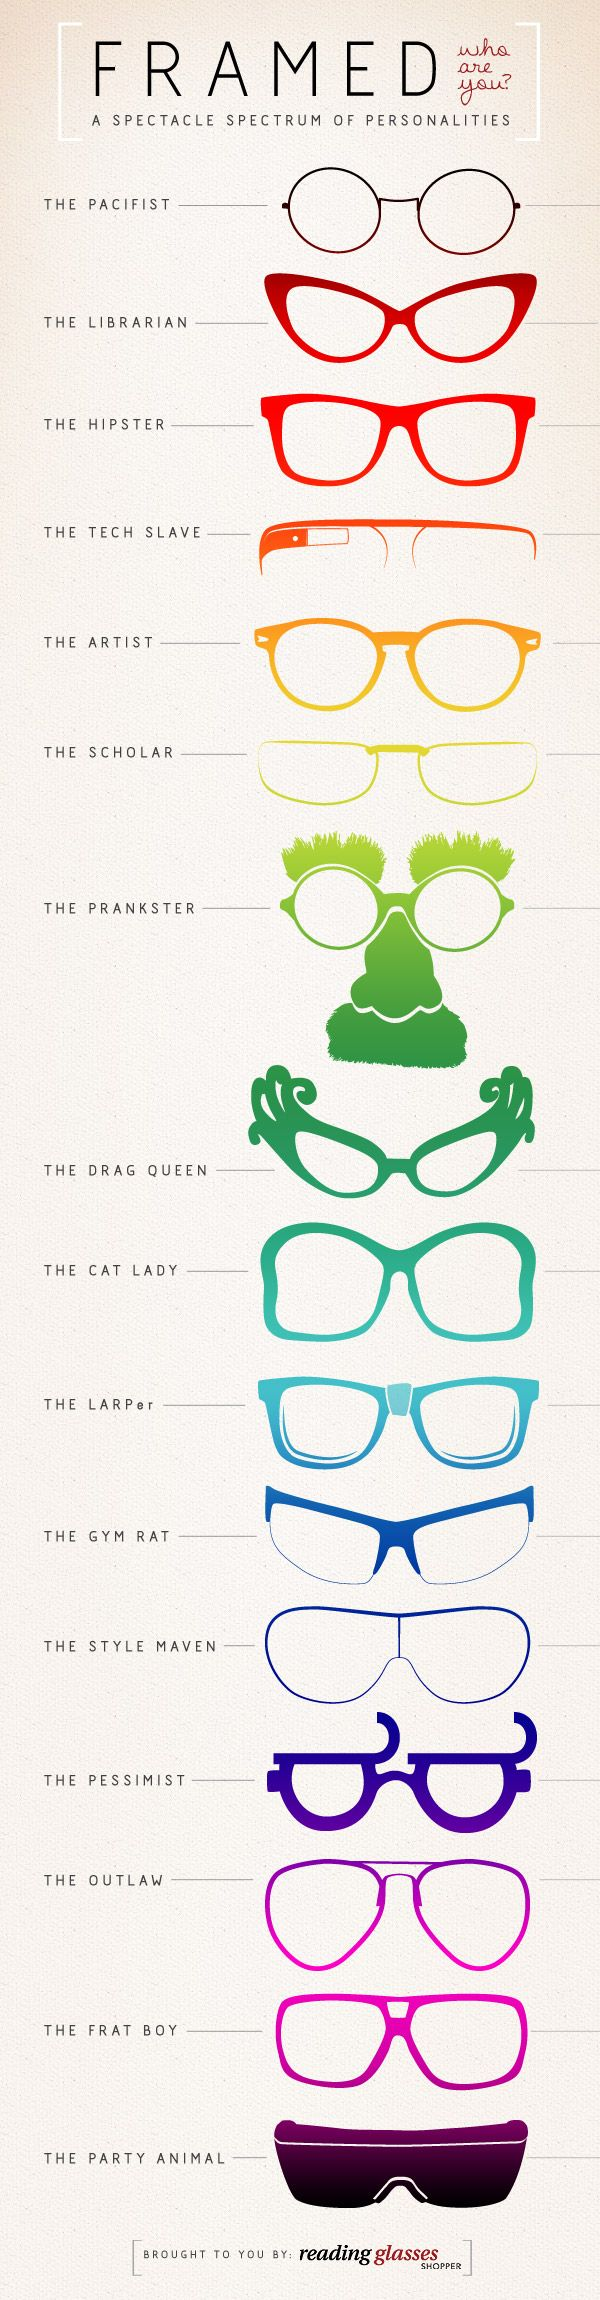 What Your Frames Say! Specky read this!Parties Animal, Hipster, Librarians, Glasses, The Artists, Catlady, Frames, Eye, Cat Lady